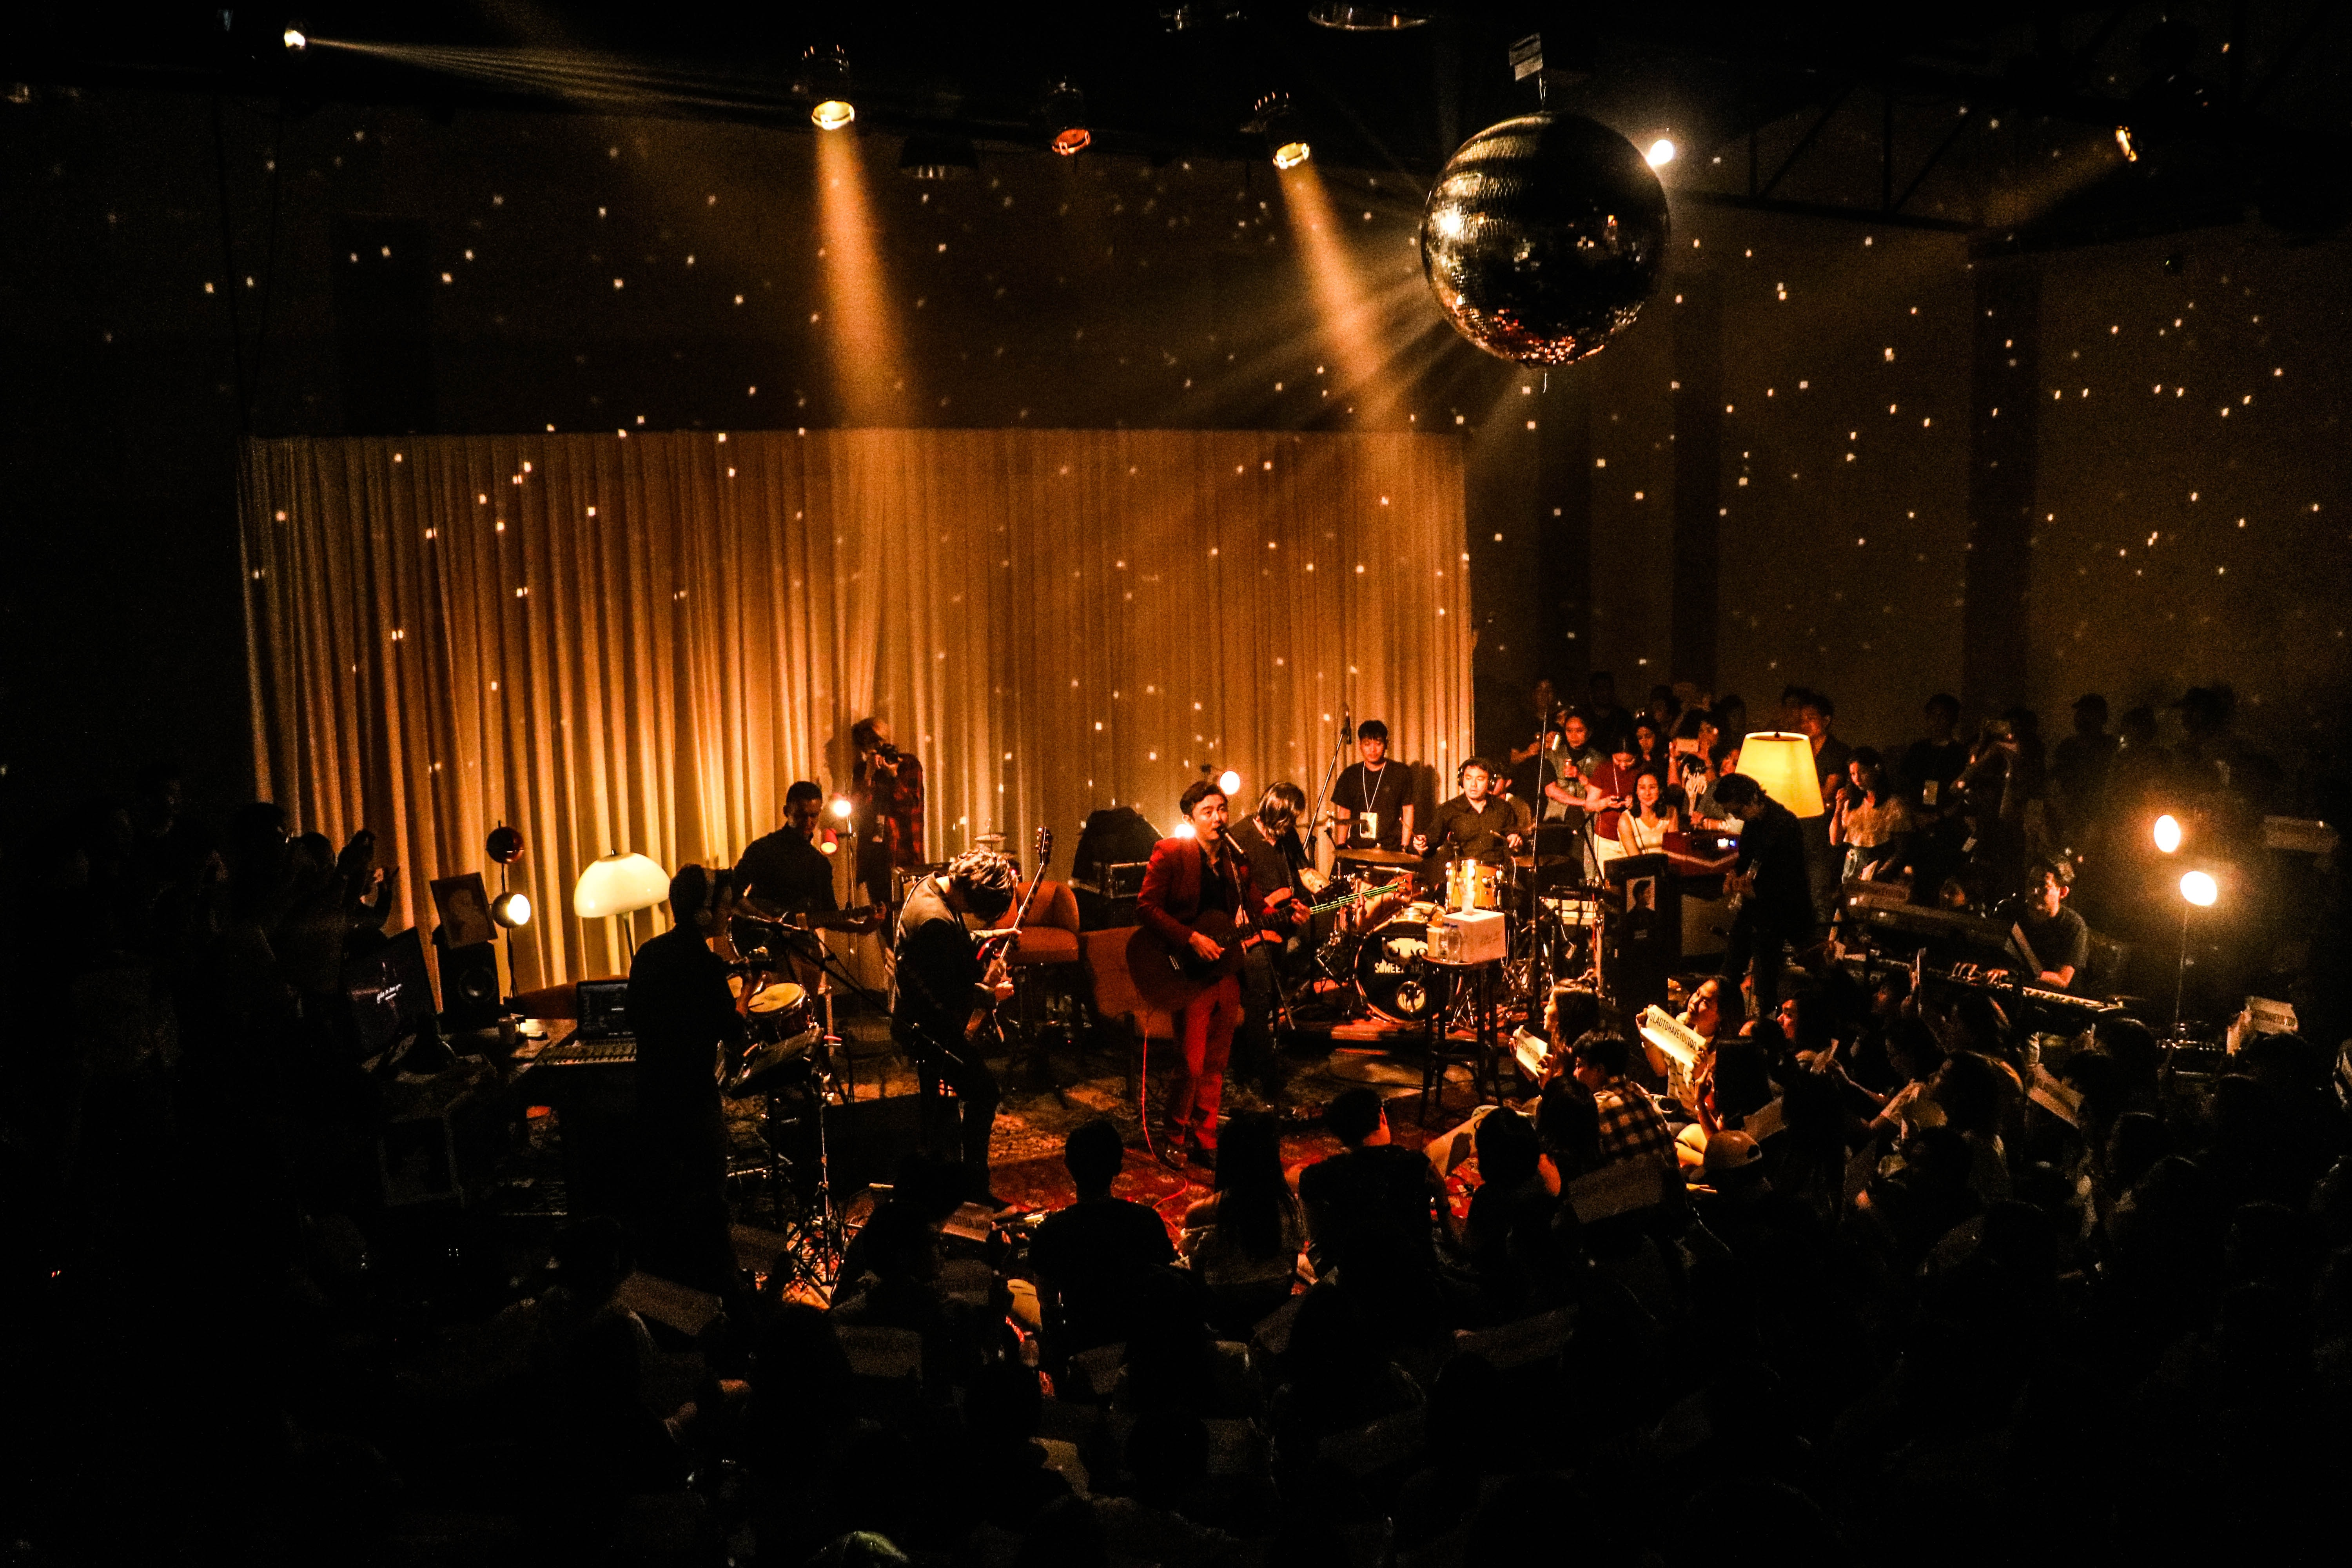 band inside room with disco ball